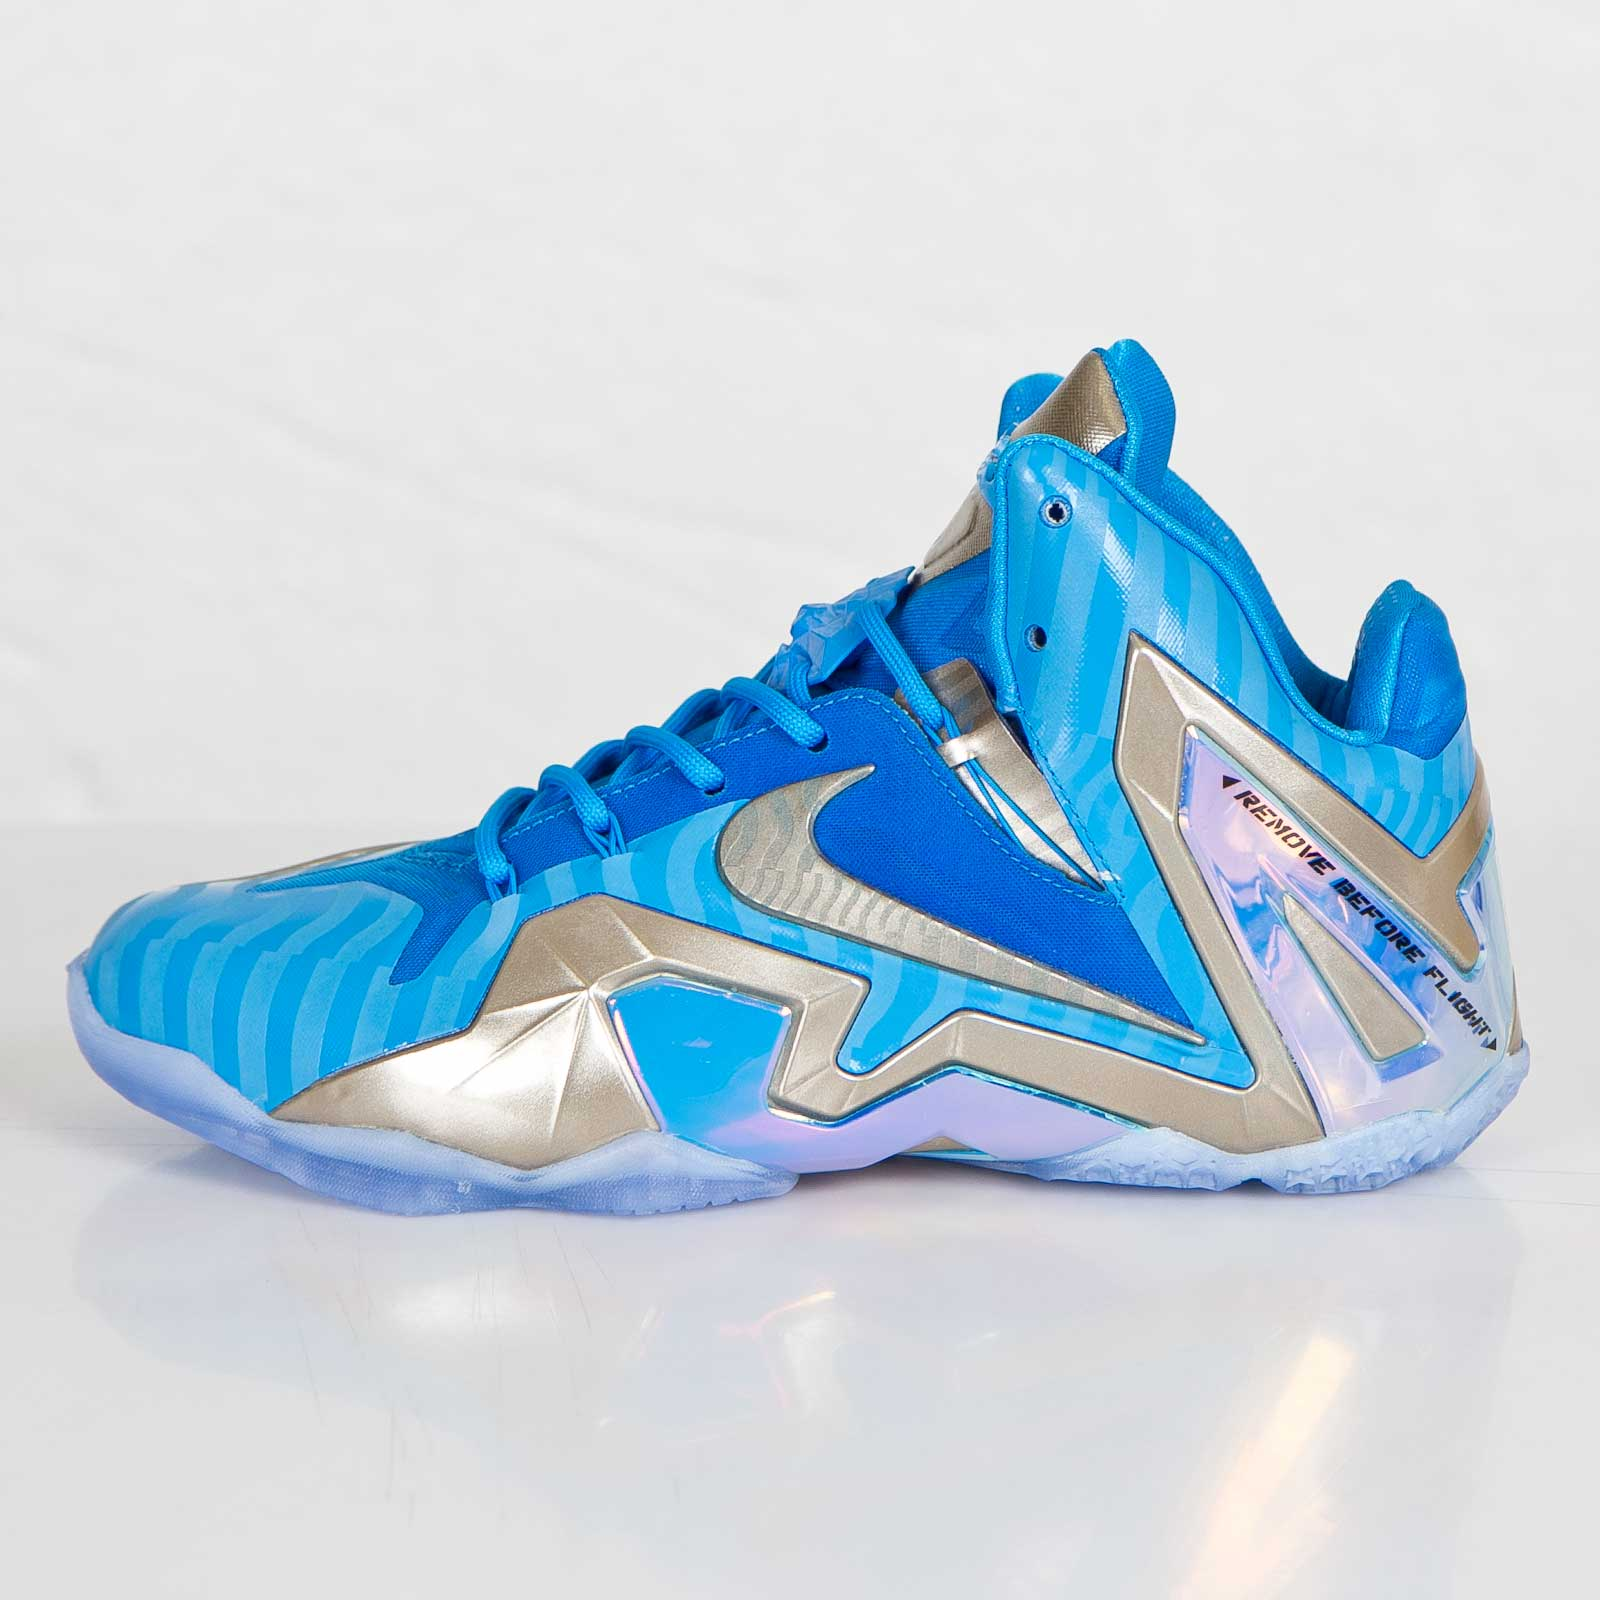 dbf4792517964 top quality kids8217 nike lebron xi gs in elite team collection colorway  cec6f 99026  get nike lebron xi elite collection 3b77e 13951